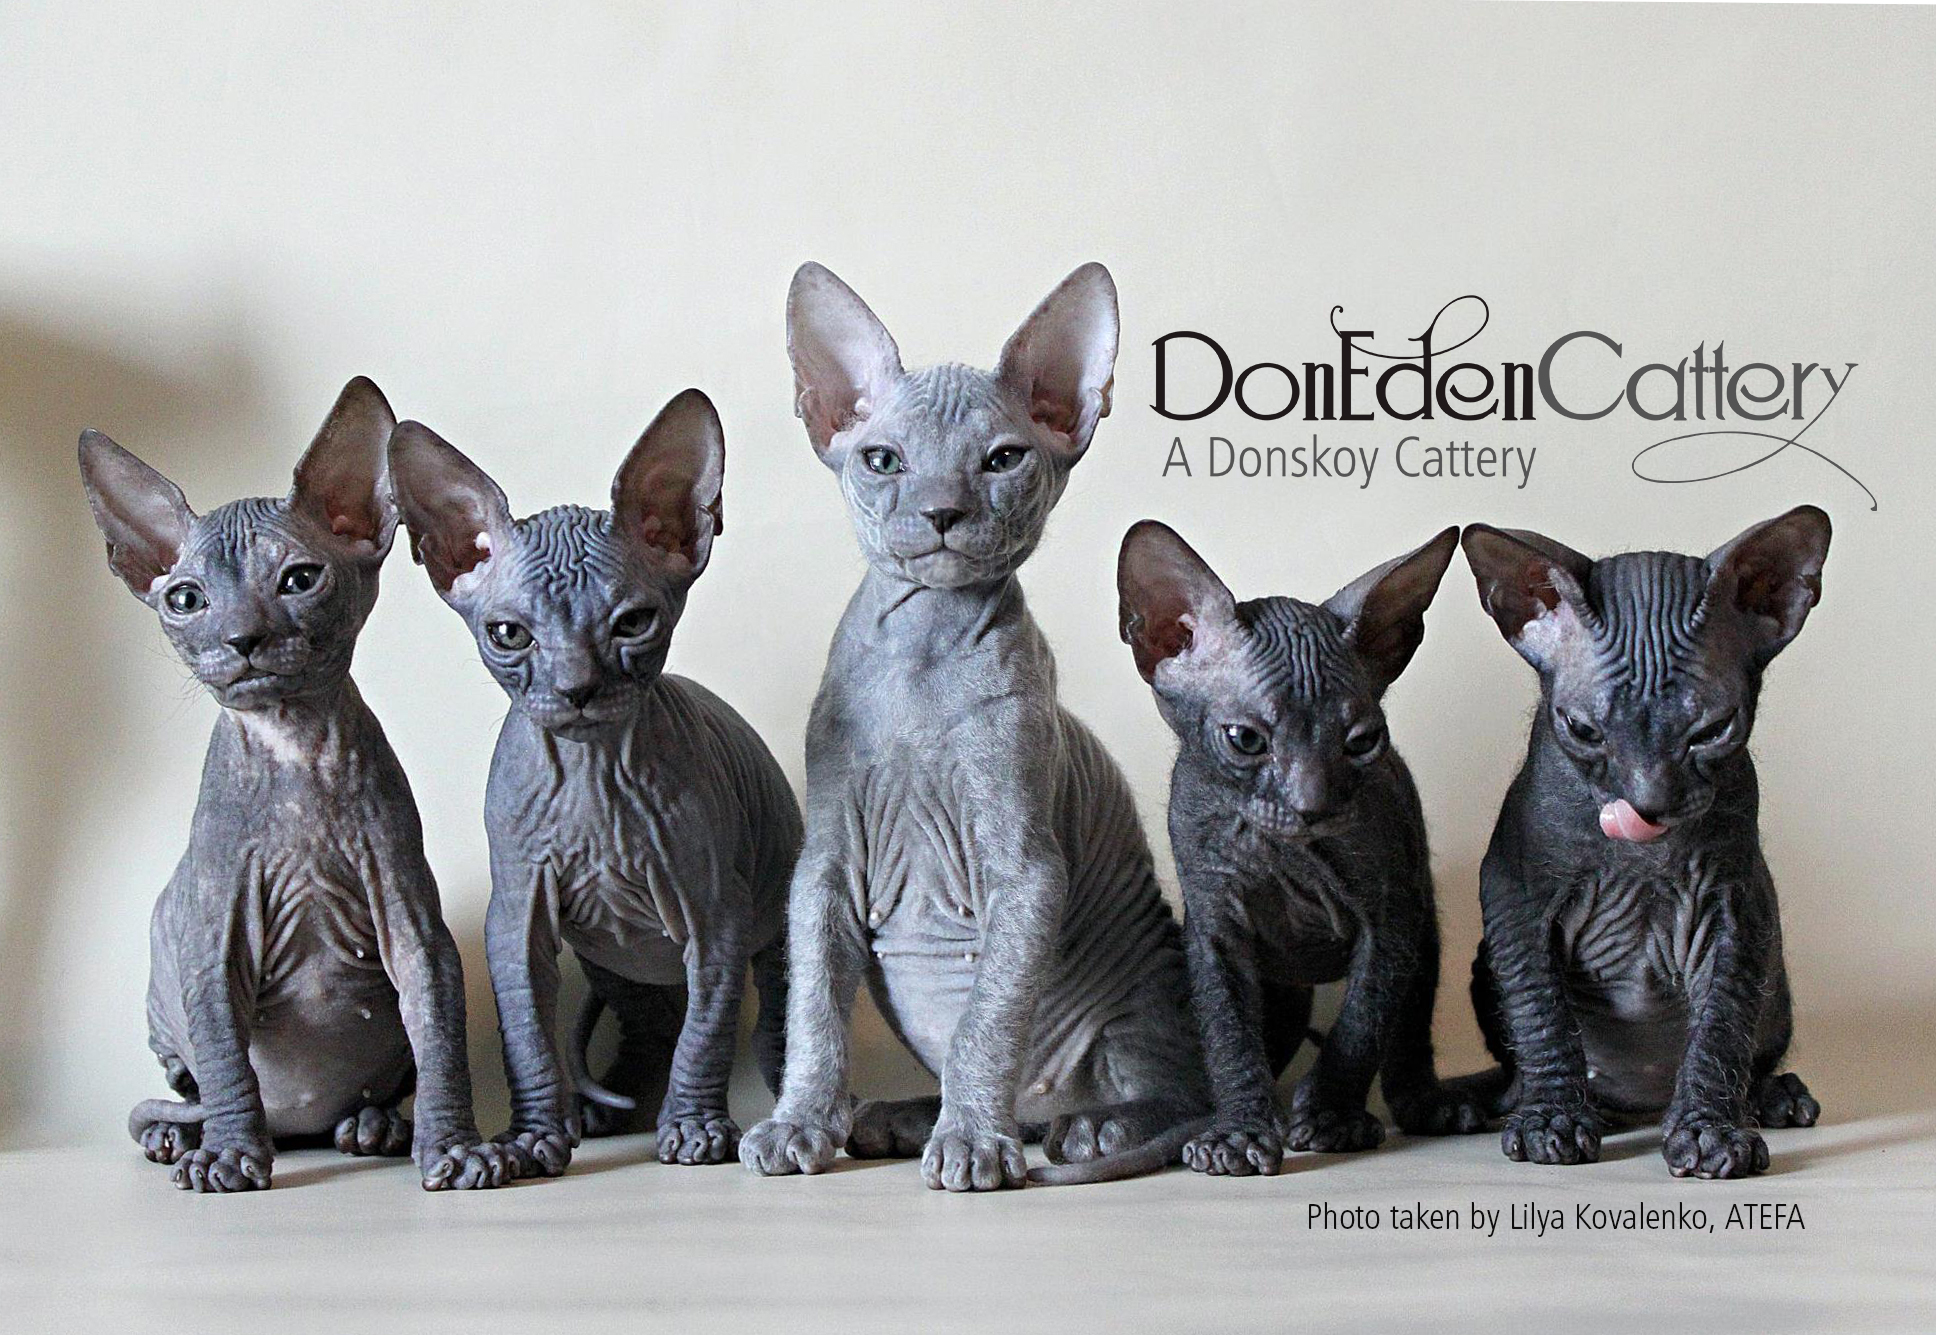 DonEden Cattery